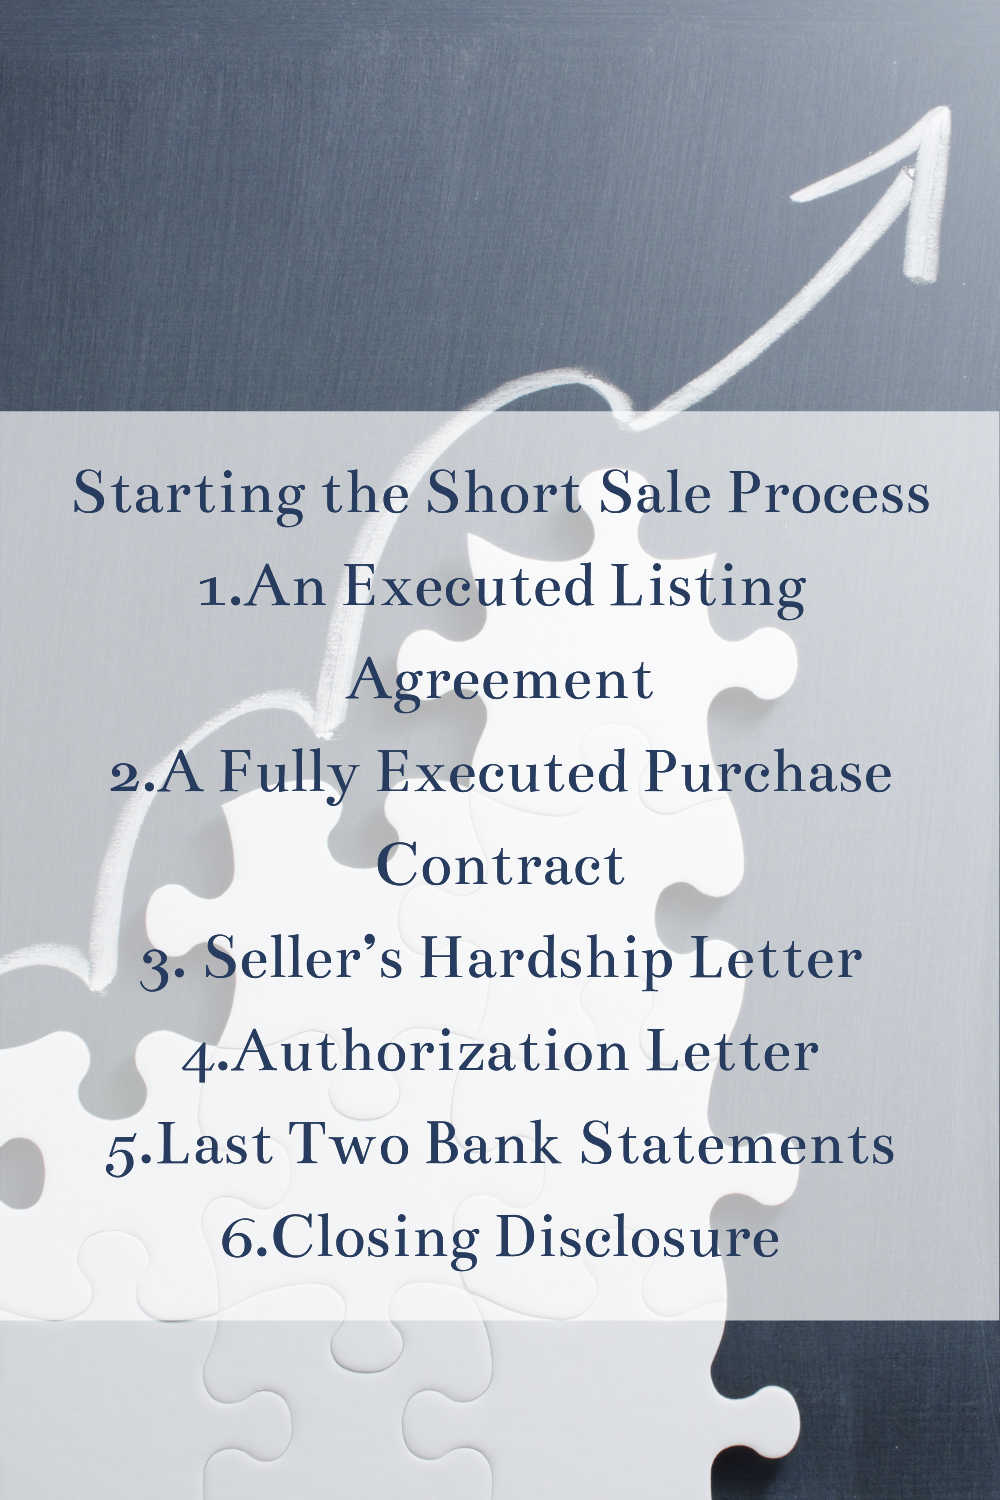 How Long Does A Short Sale Take To Get Approved